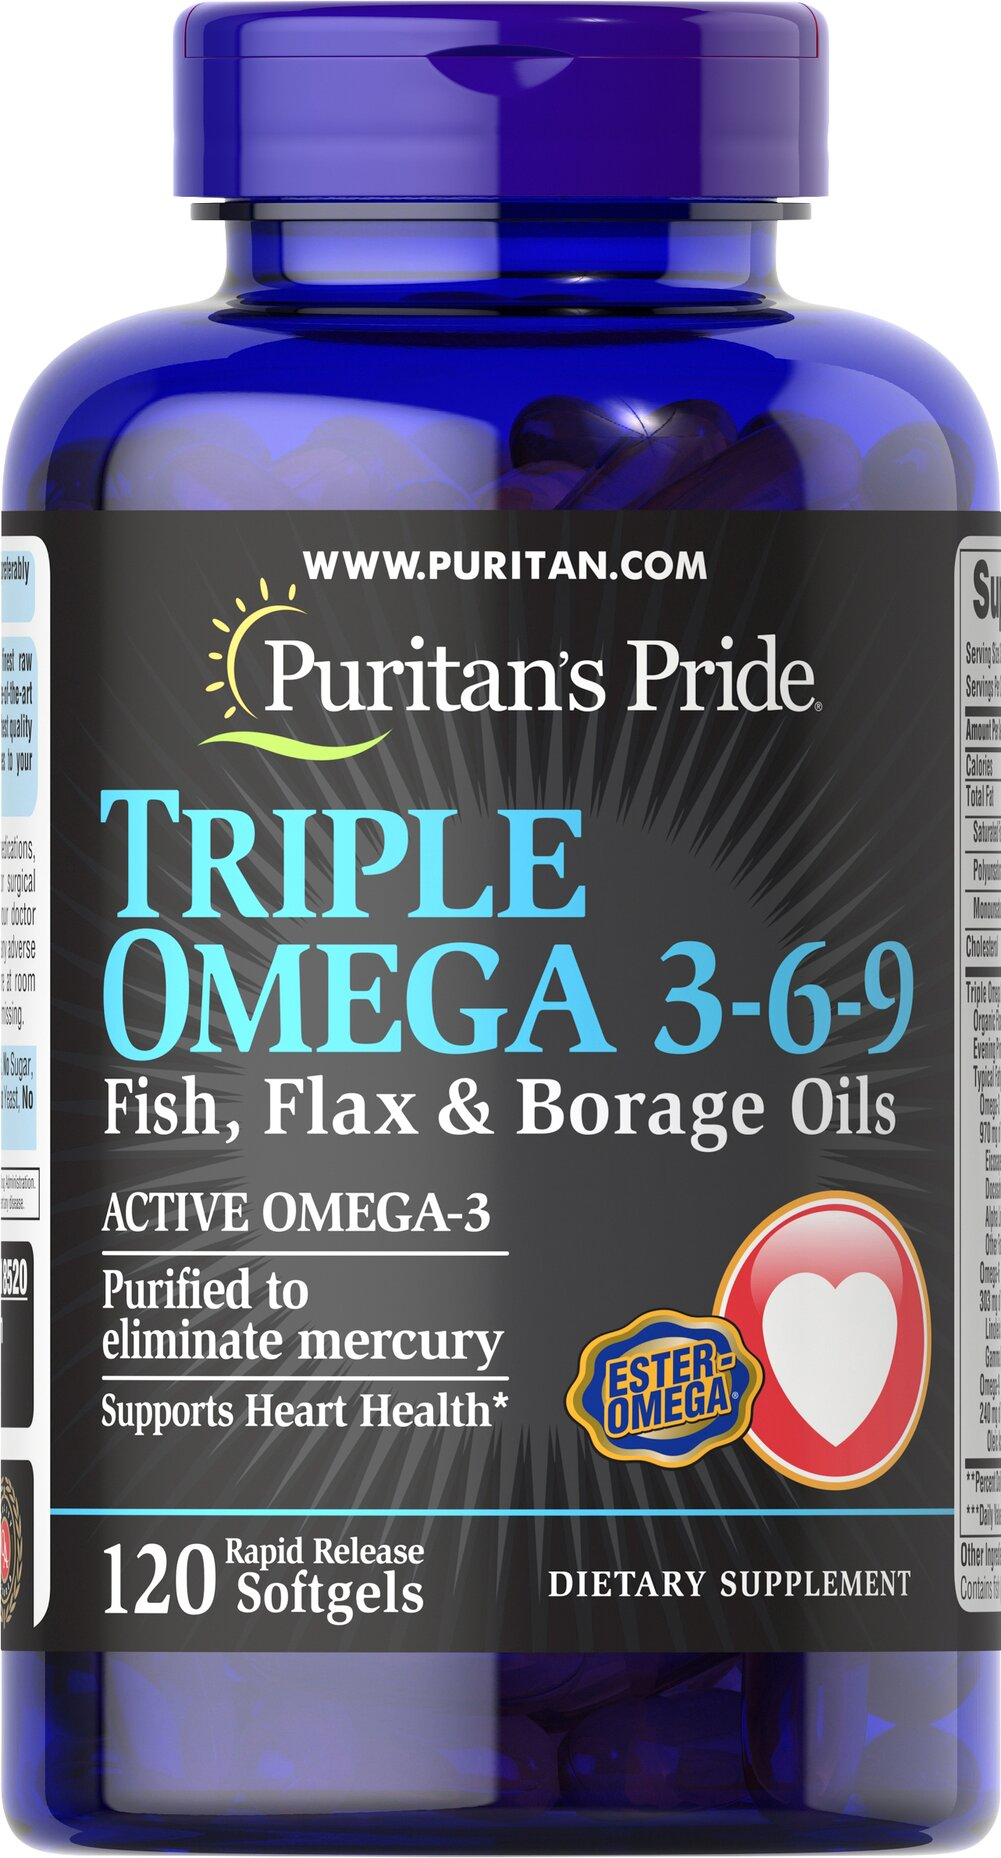 "Triple Omega 3-6-9 Fish, Flax & Borage Oils <p><strong>Purified to Eliminate Mercury</strong></p><p>Contains Omega-3, Omega-6 and Omega-9 – the ""good"" fats important for cellular, heart and metabolic health.** </p>TRIPLE OMEGA 3-6-9 contains <em>a proprietary blend of essential oils, including Flaxseed Oil, Fish Oil, Evening Primrose Oil and Borage Oil, and is a good source of Vitamin E.</em><p></p> 120 Softgels  $17.19"